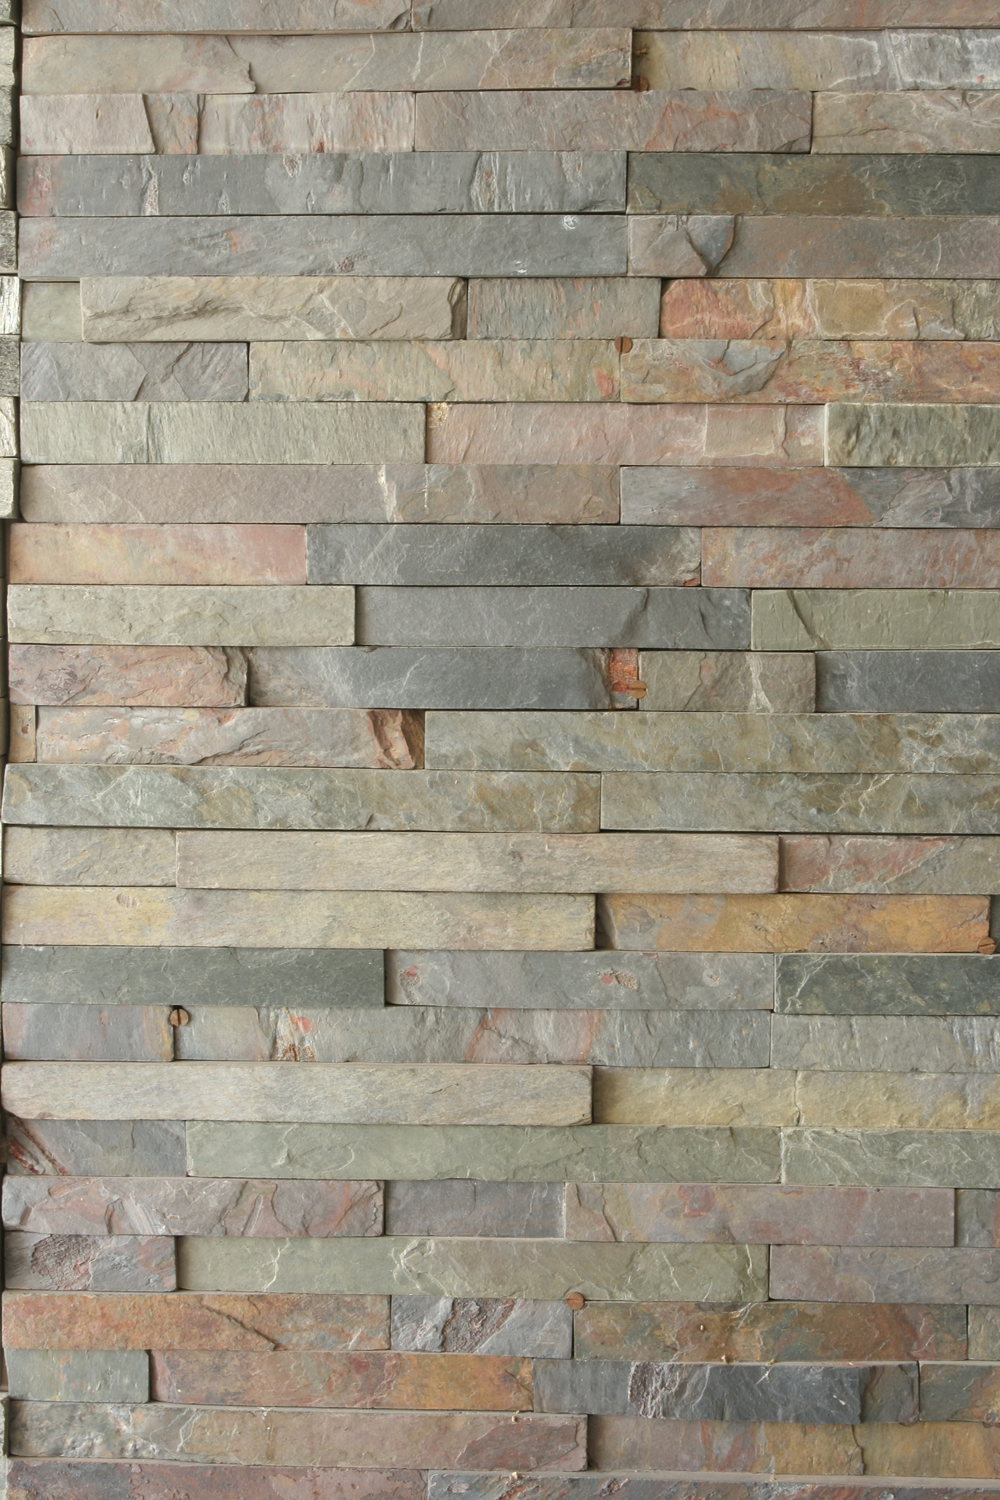 stone ideas stone floor stone tiles stone cladding